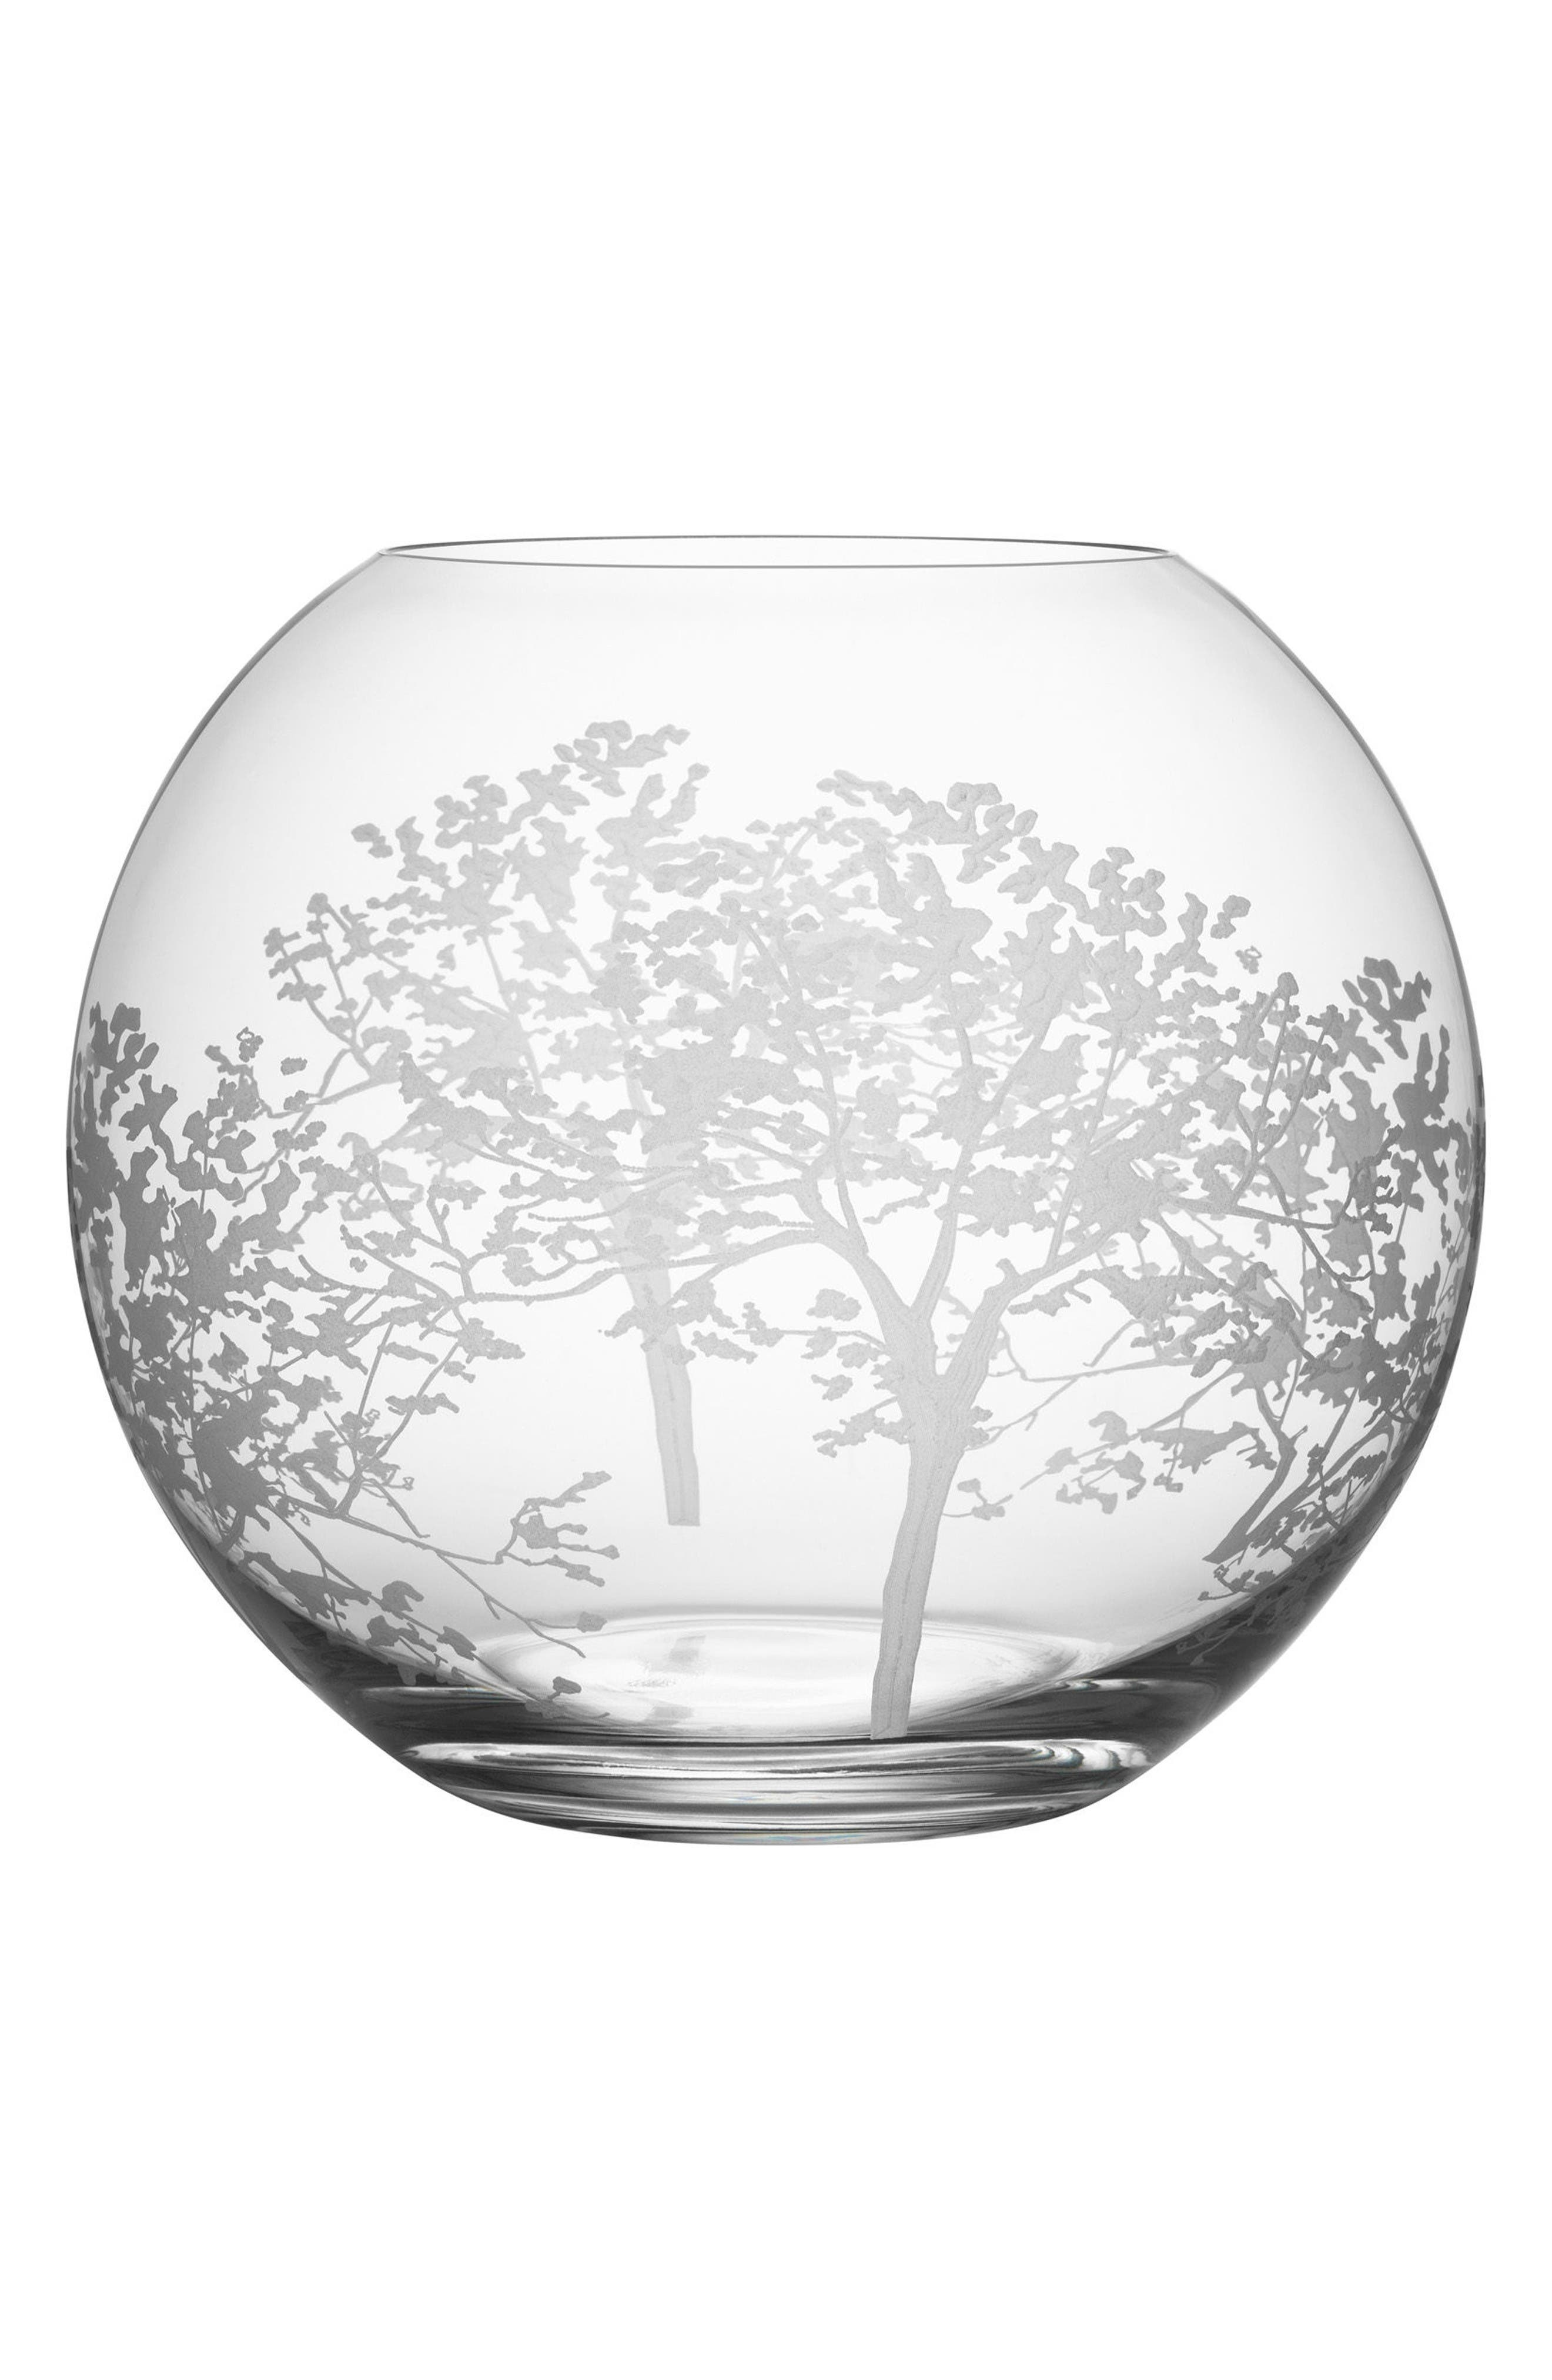 Alternate Image 1 Selected - Orrefors Organic Round Vase